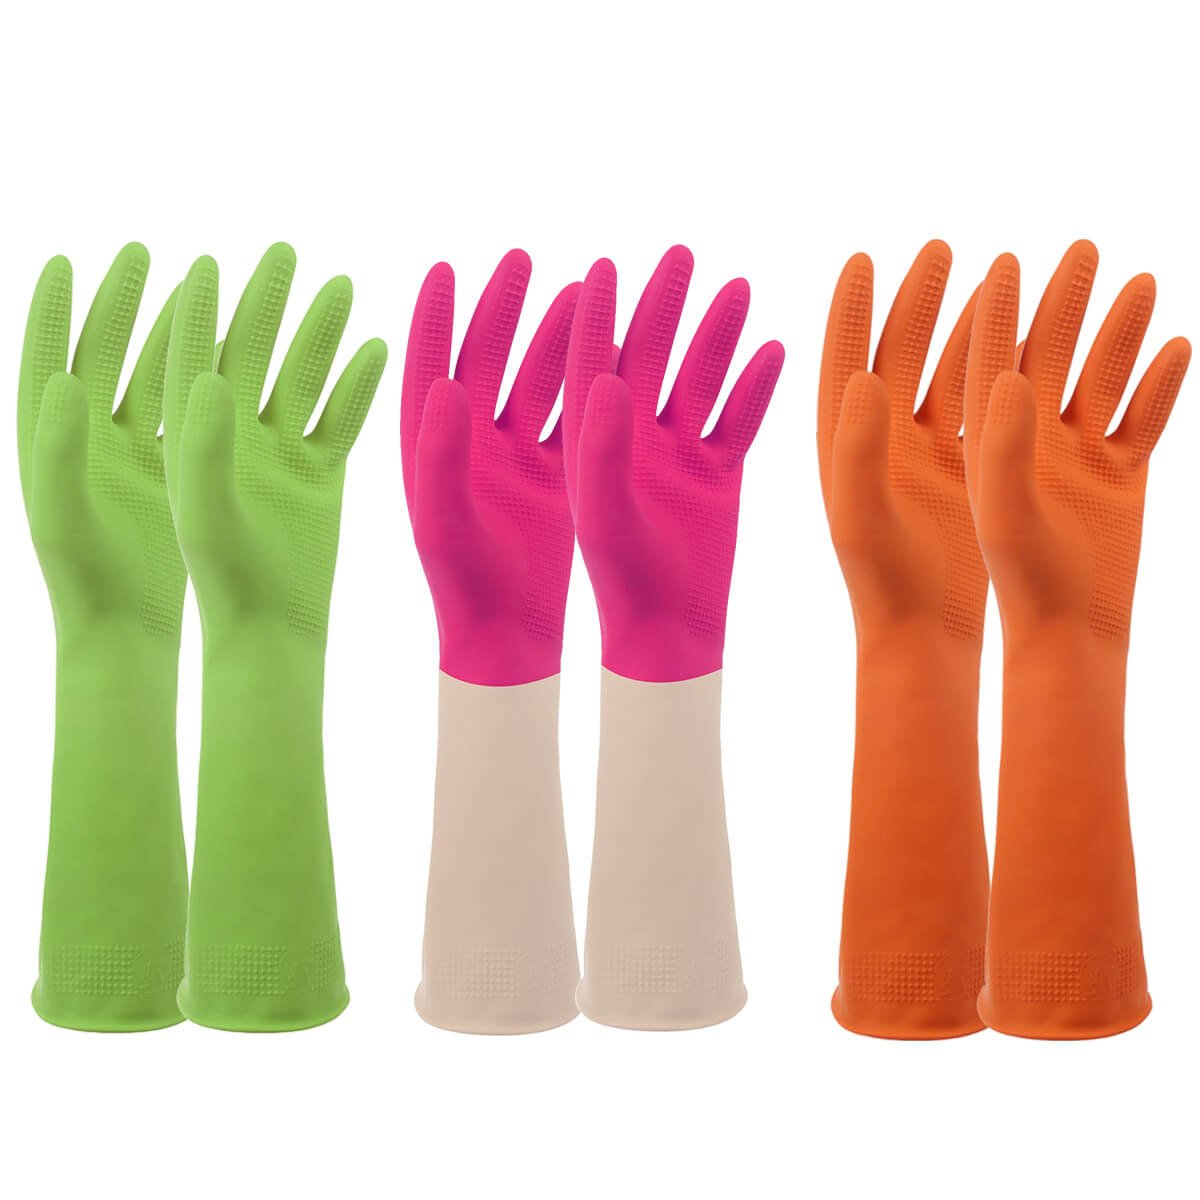 Rubber Household Cleaning Latex Gloves – Set of 3, PEGZOS Reusable Kitchen Natural Rubber Living Wash Gloves, with 3 Colors (Green/Orange/Pink)/3 Sizes (S/M/L) (Small, Pink/Green/Orange)